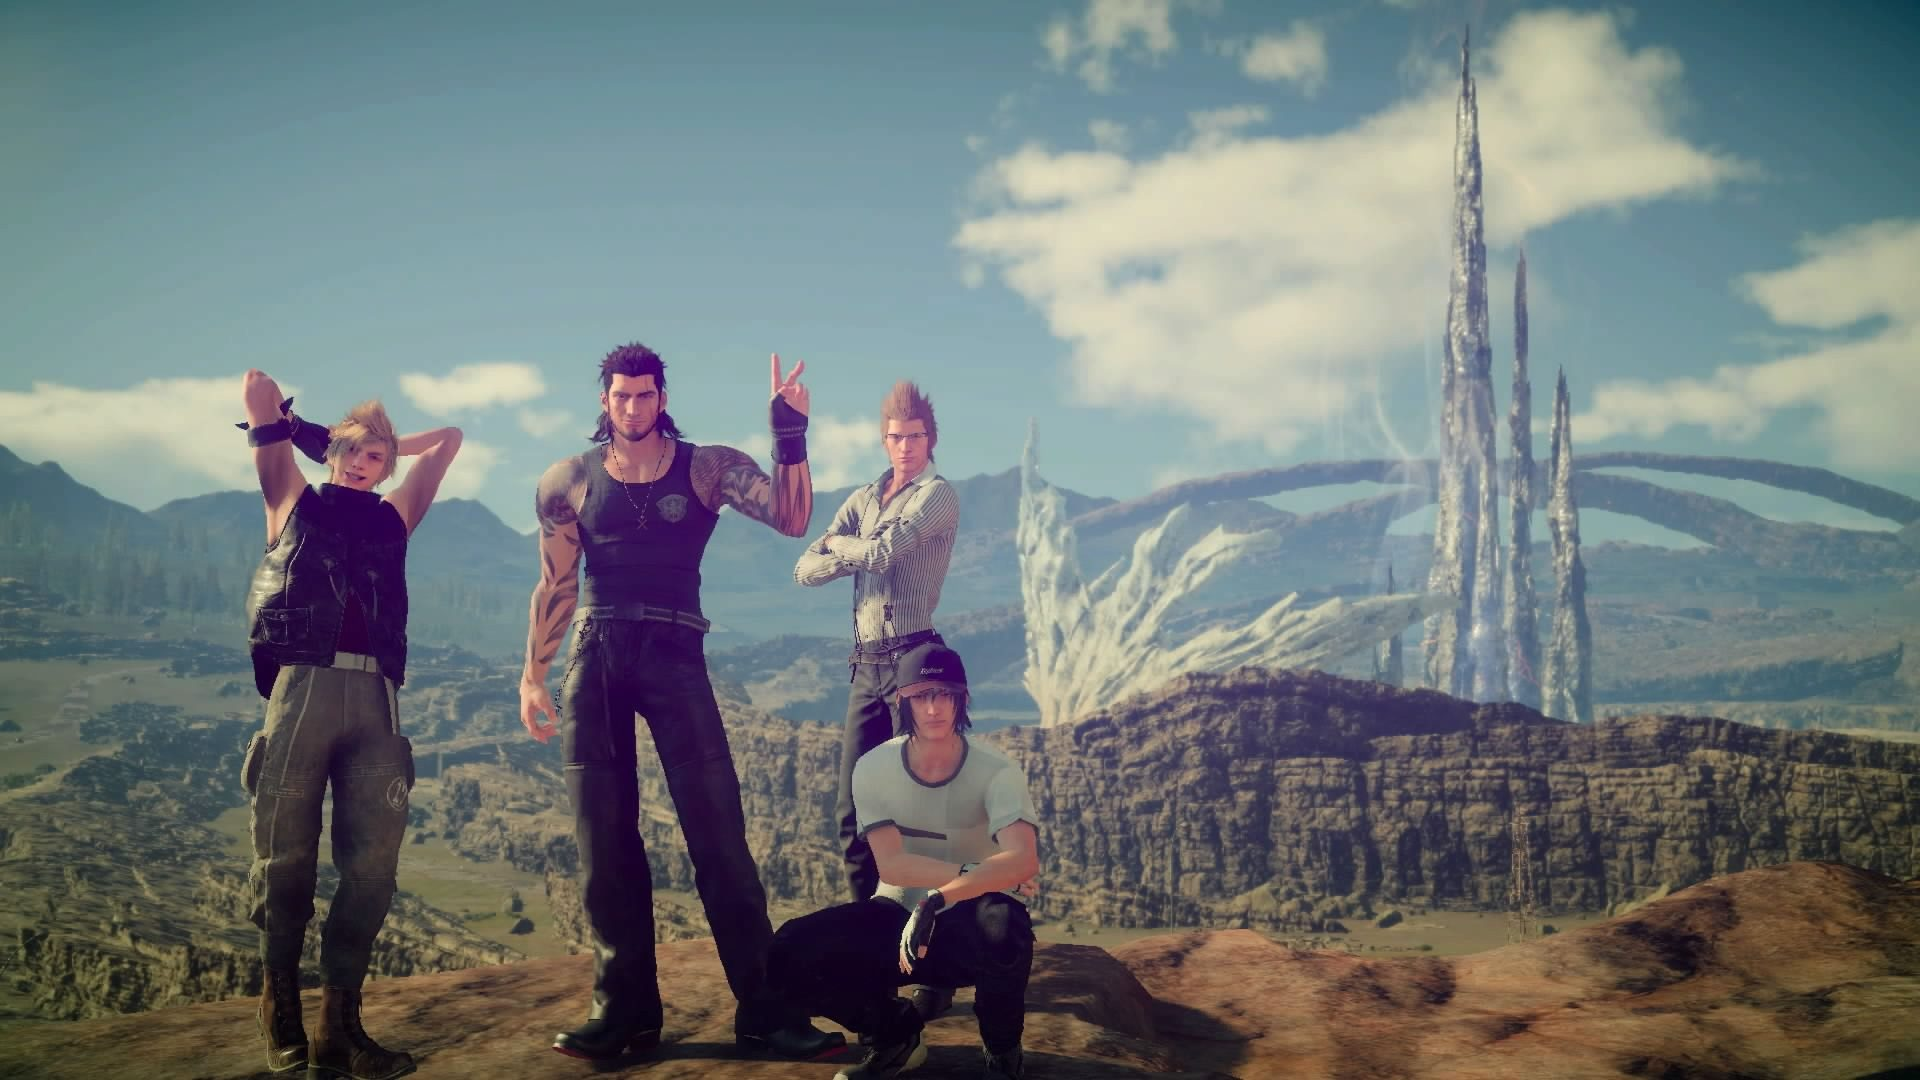 From left to right: Cloud Jr., Jumbo Mullet, Nerdy Wesker, and Noctis.